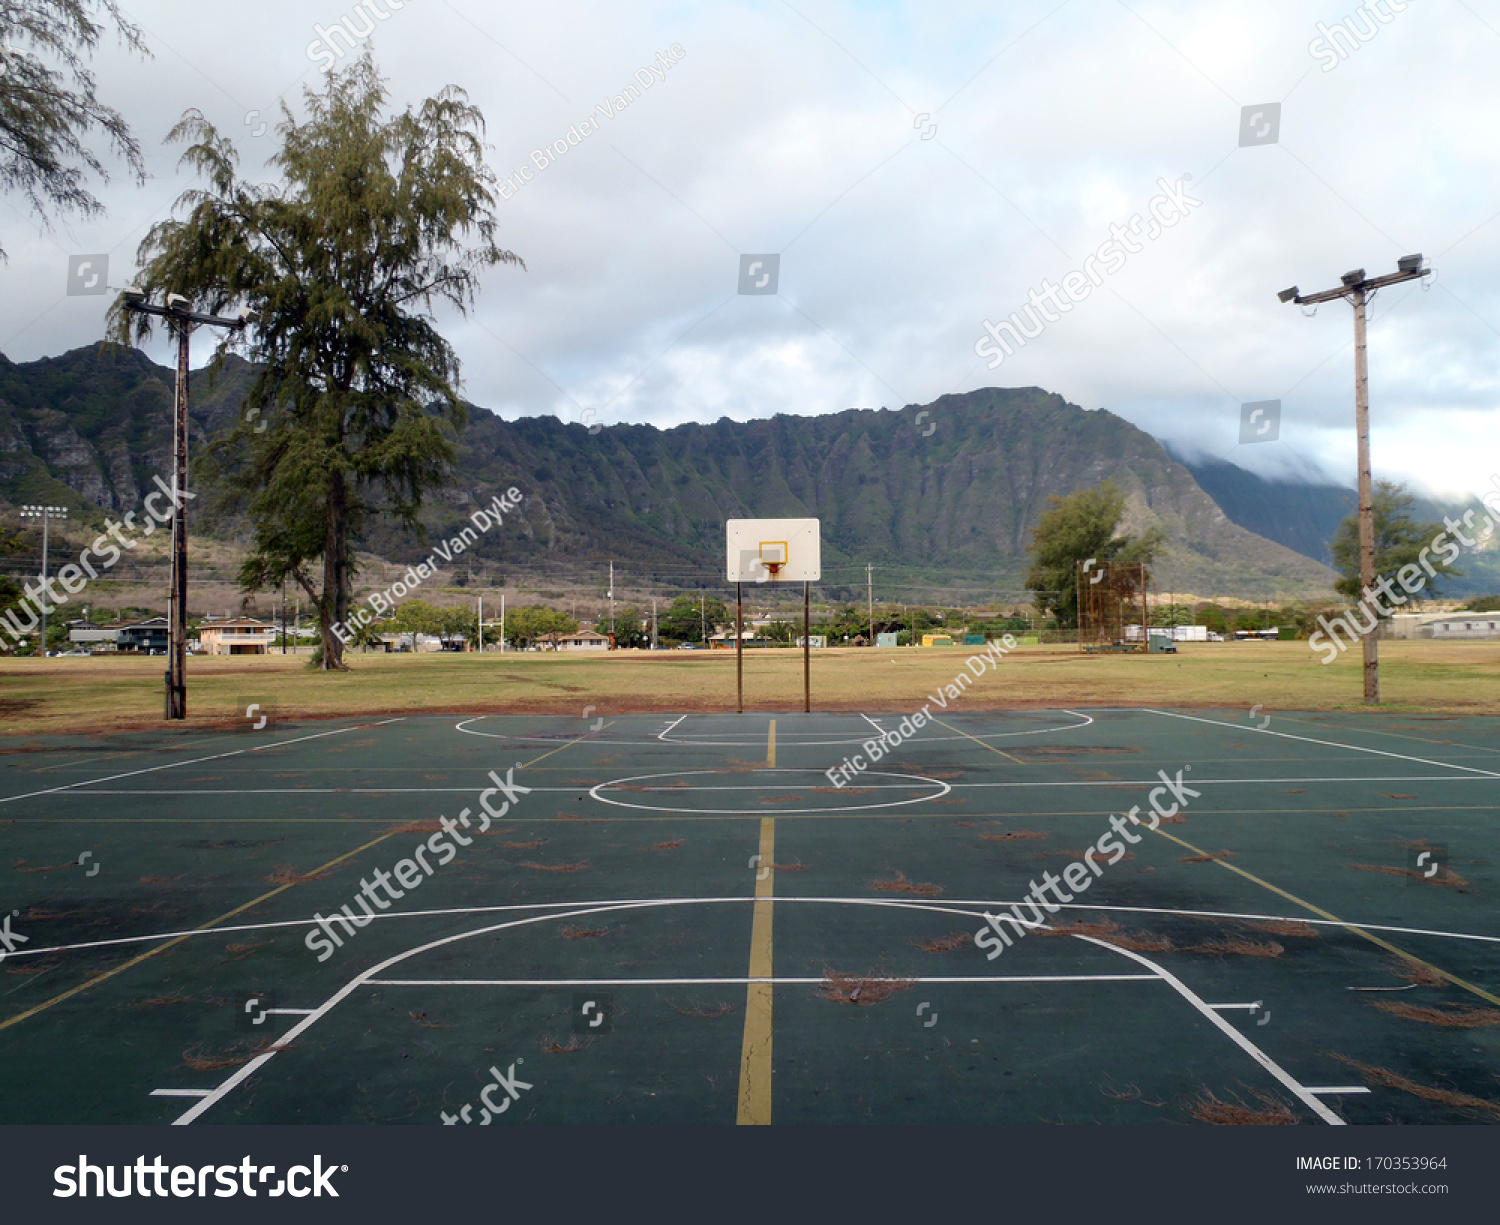 old rusty empty outdoor basketball court with lights on wooden poles and pine needles on the